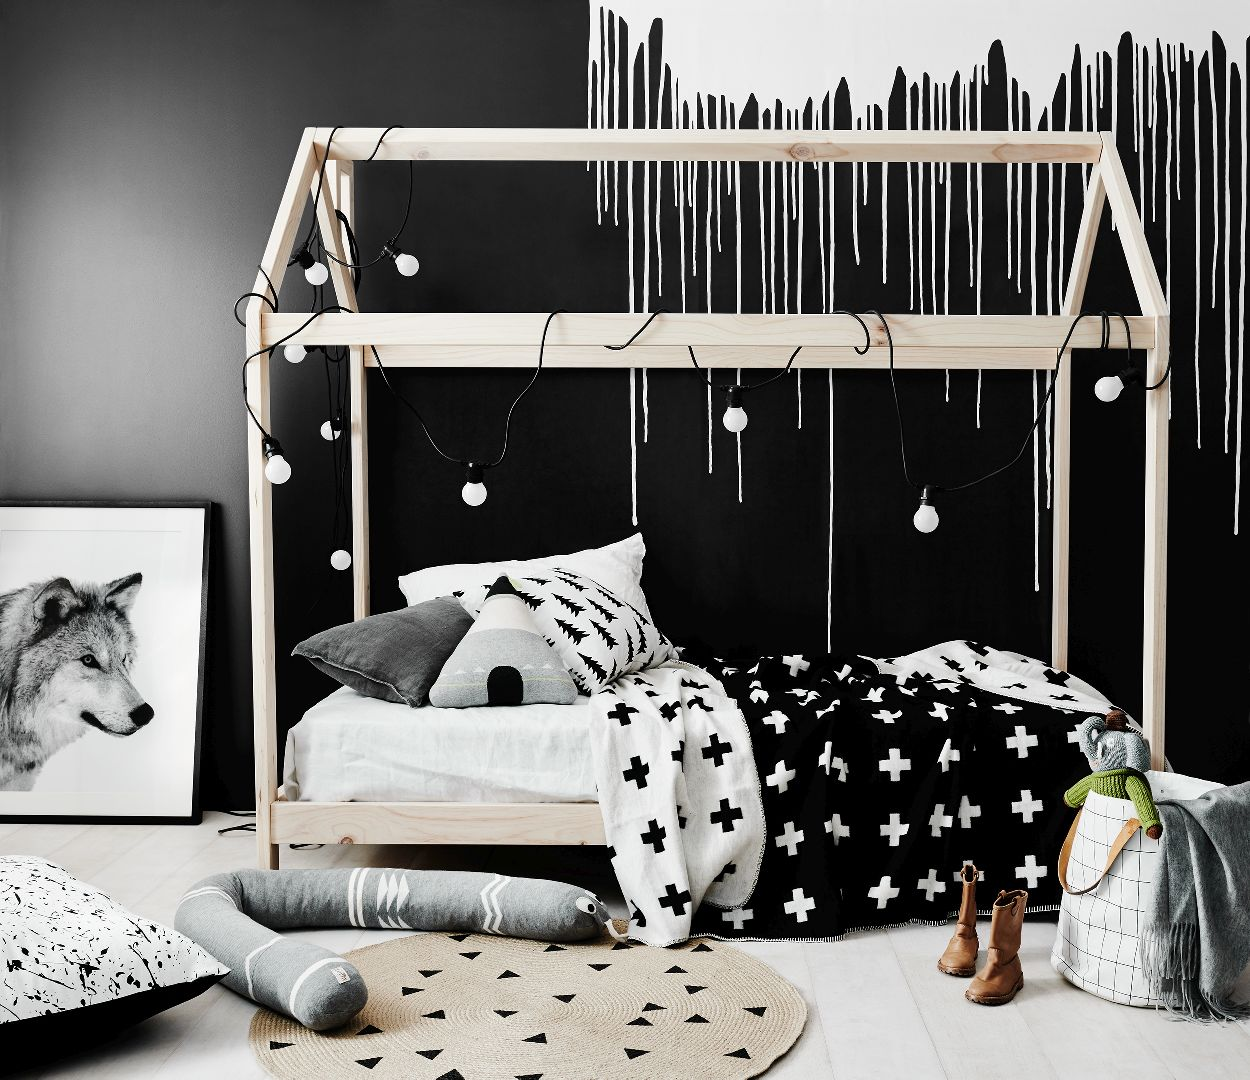 11norsu-interiors_-collection-monochrome-kid039s-room-may-15.jpg